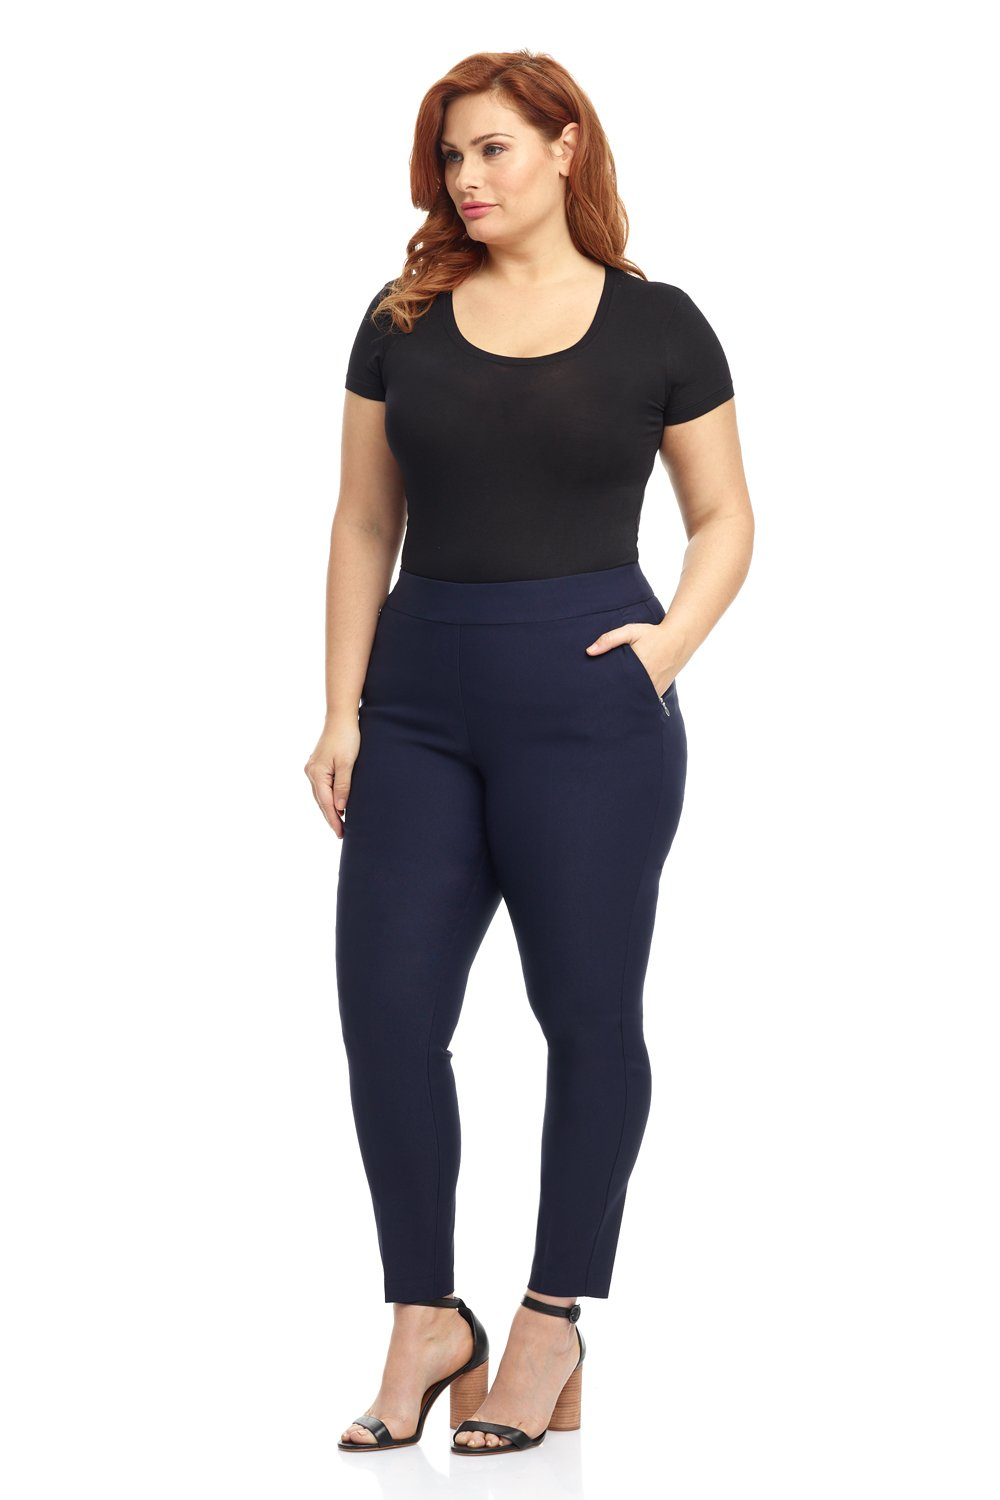 Rekucci Curvy Woman Ease In To Comfort Fit Modern Skinny Plus Size Pant w/Tummy Control (14W,Navy)